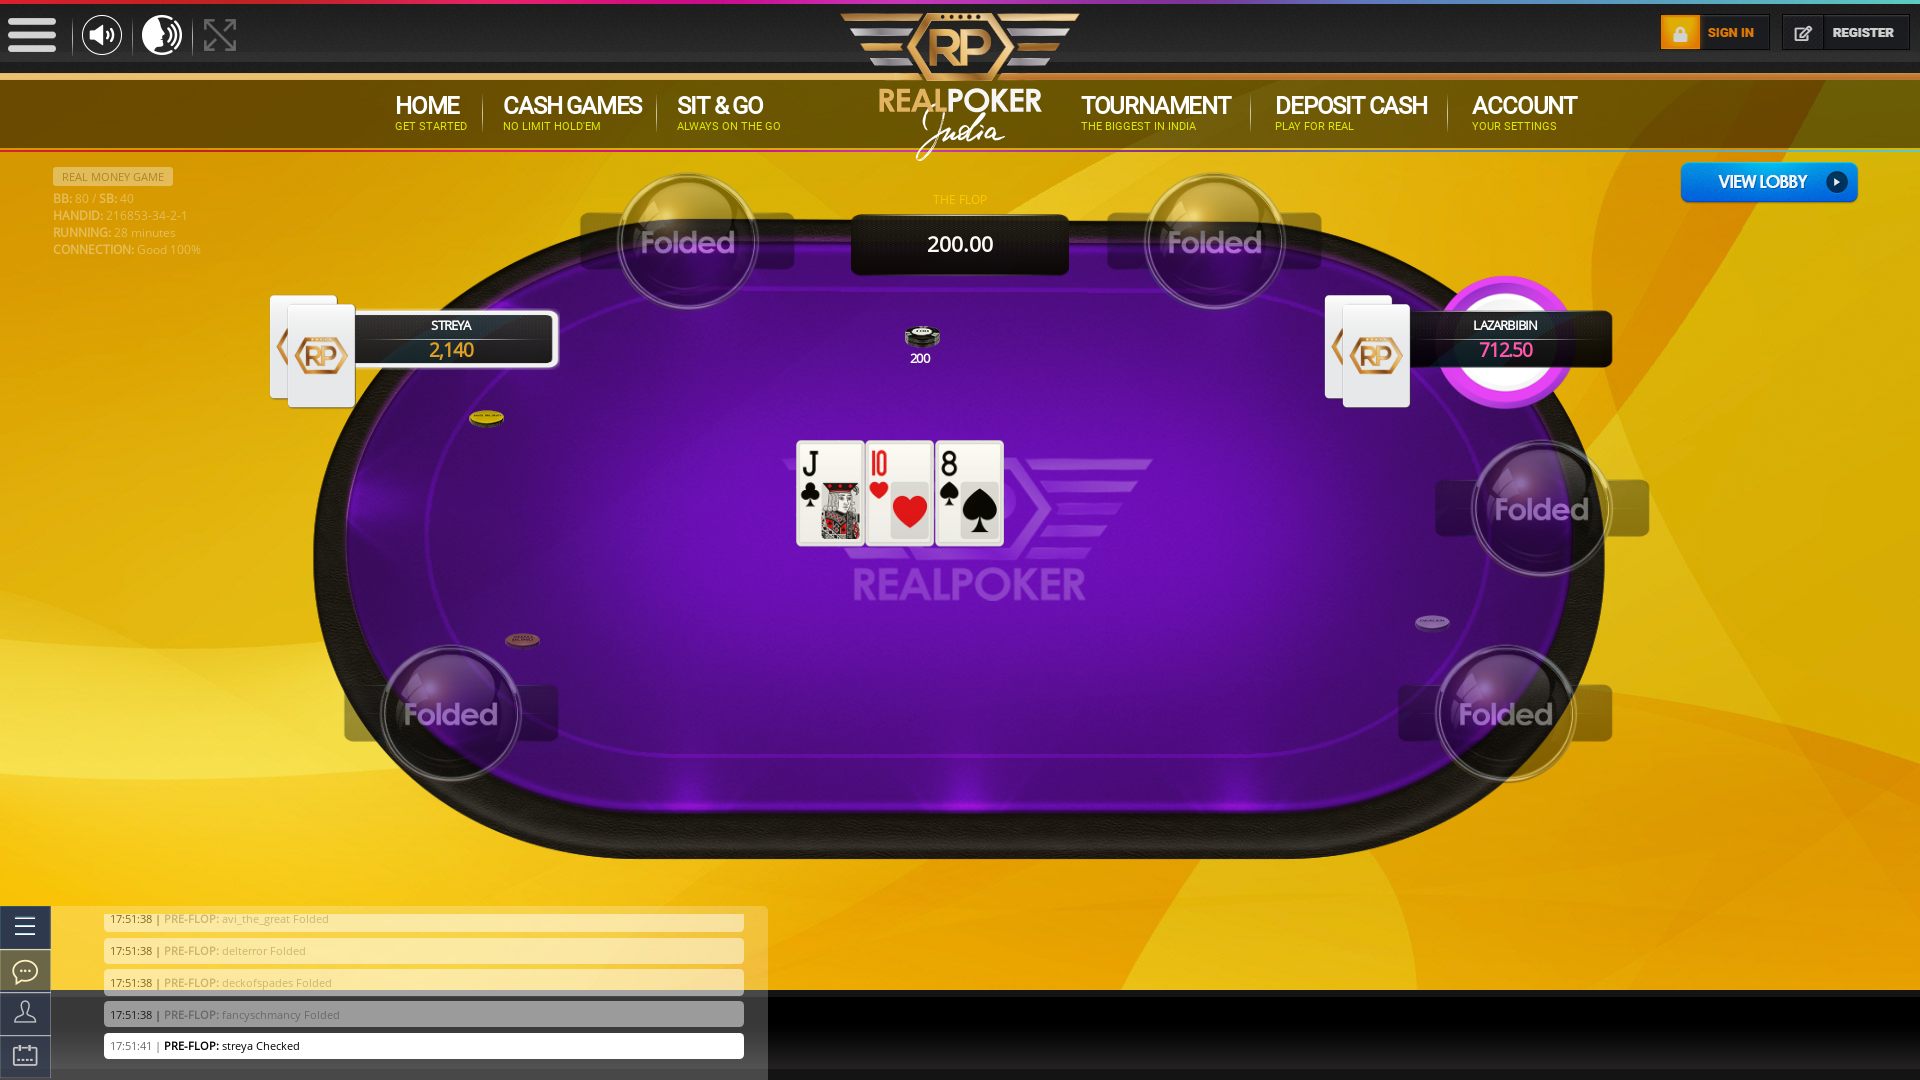 Indian online poker on a 10 player table in the 28th minute match up